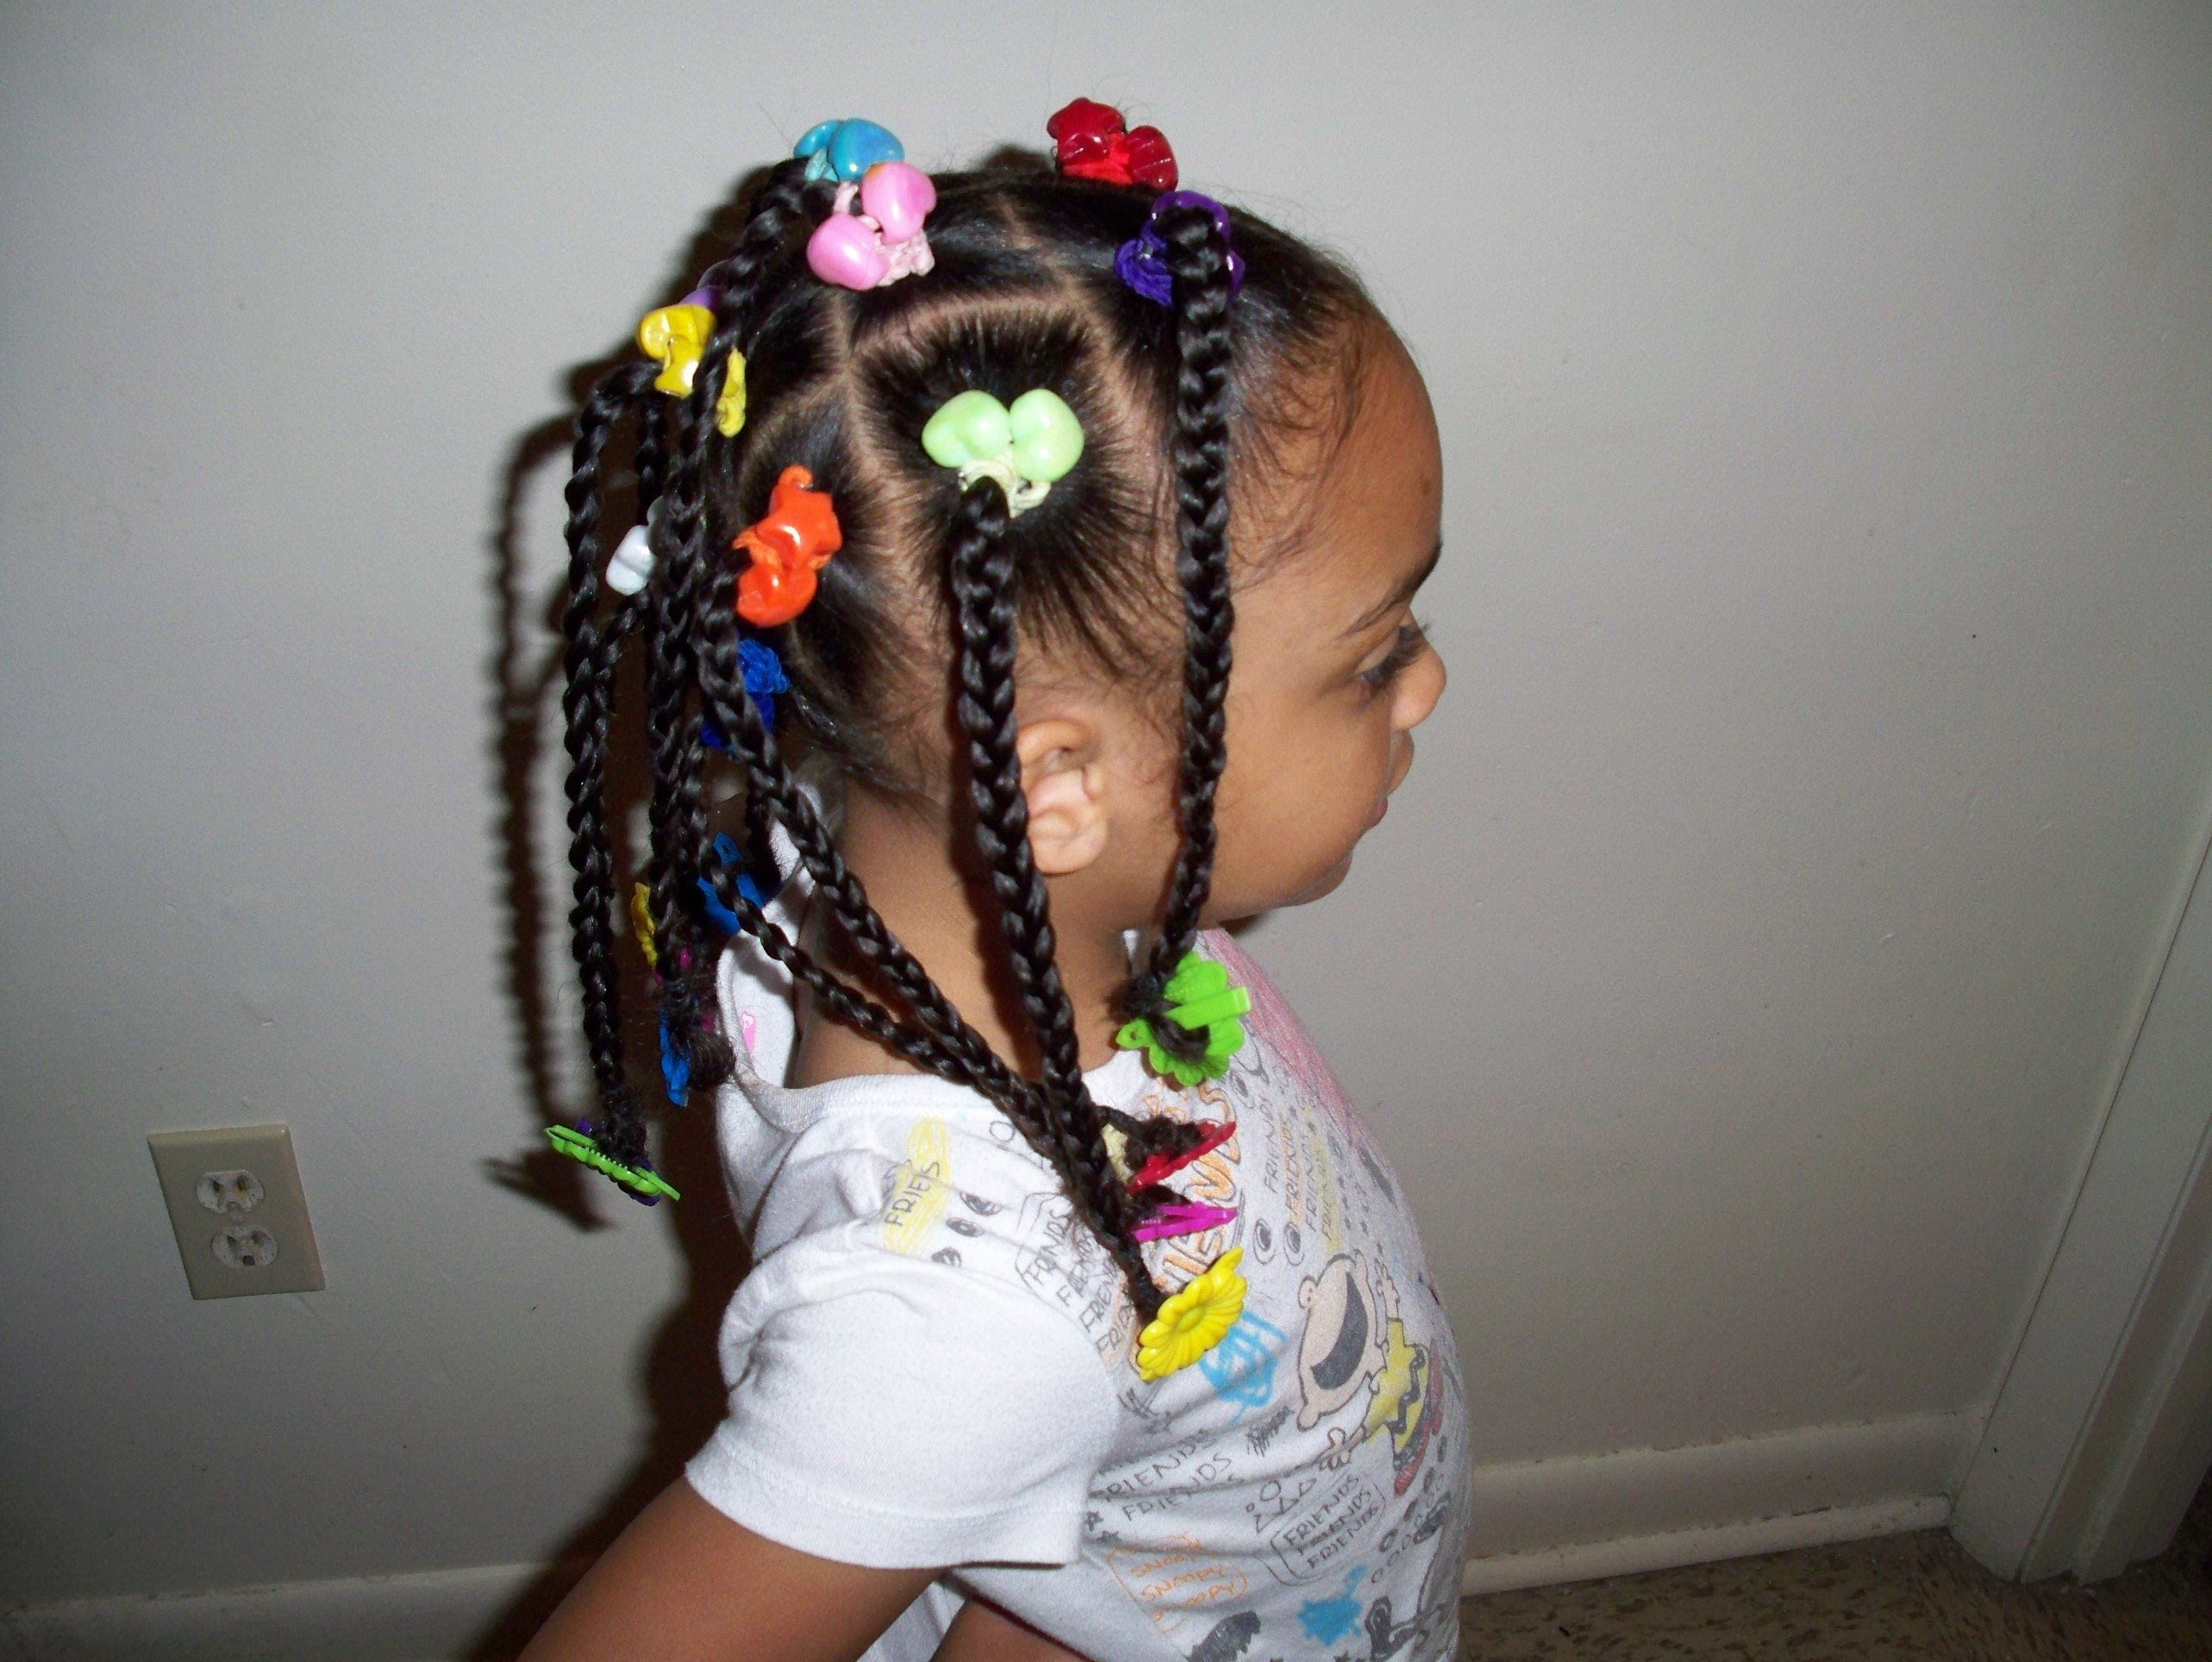 Cute easy hairstyles that kids can do - Just Thought I Would Share The Cute Kids Hairstyles I Do To My Daughters Hair And